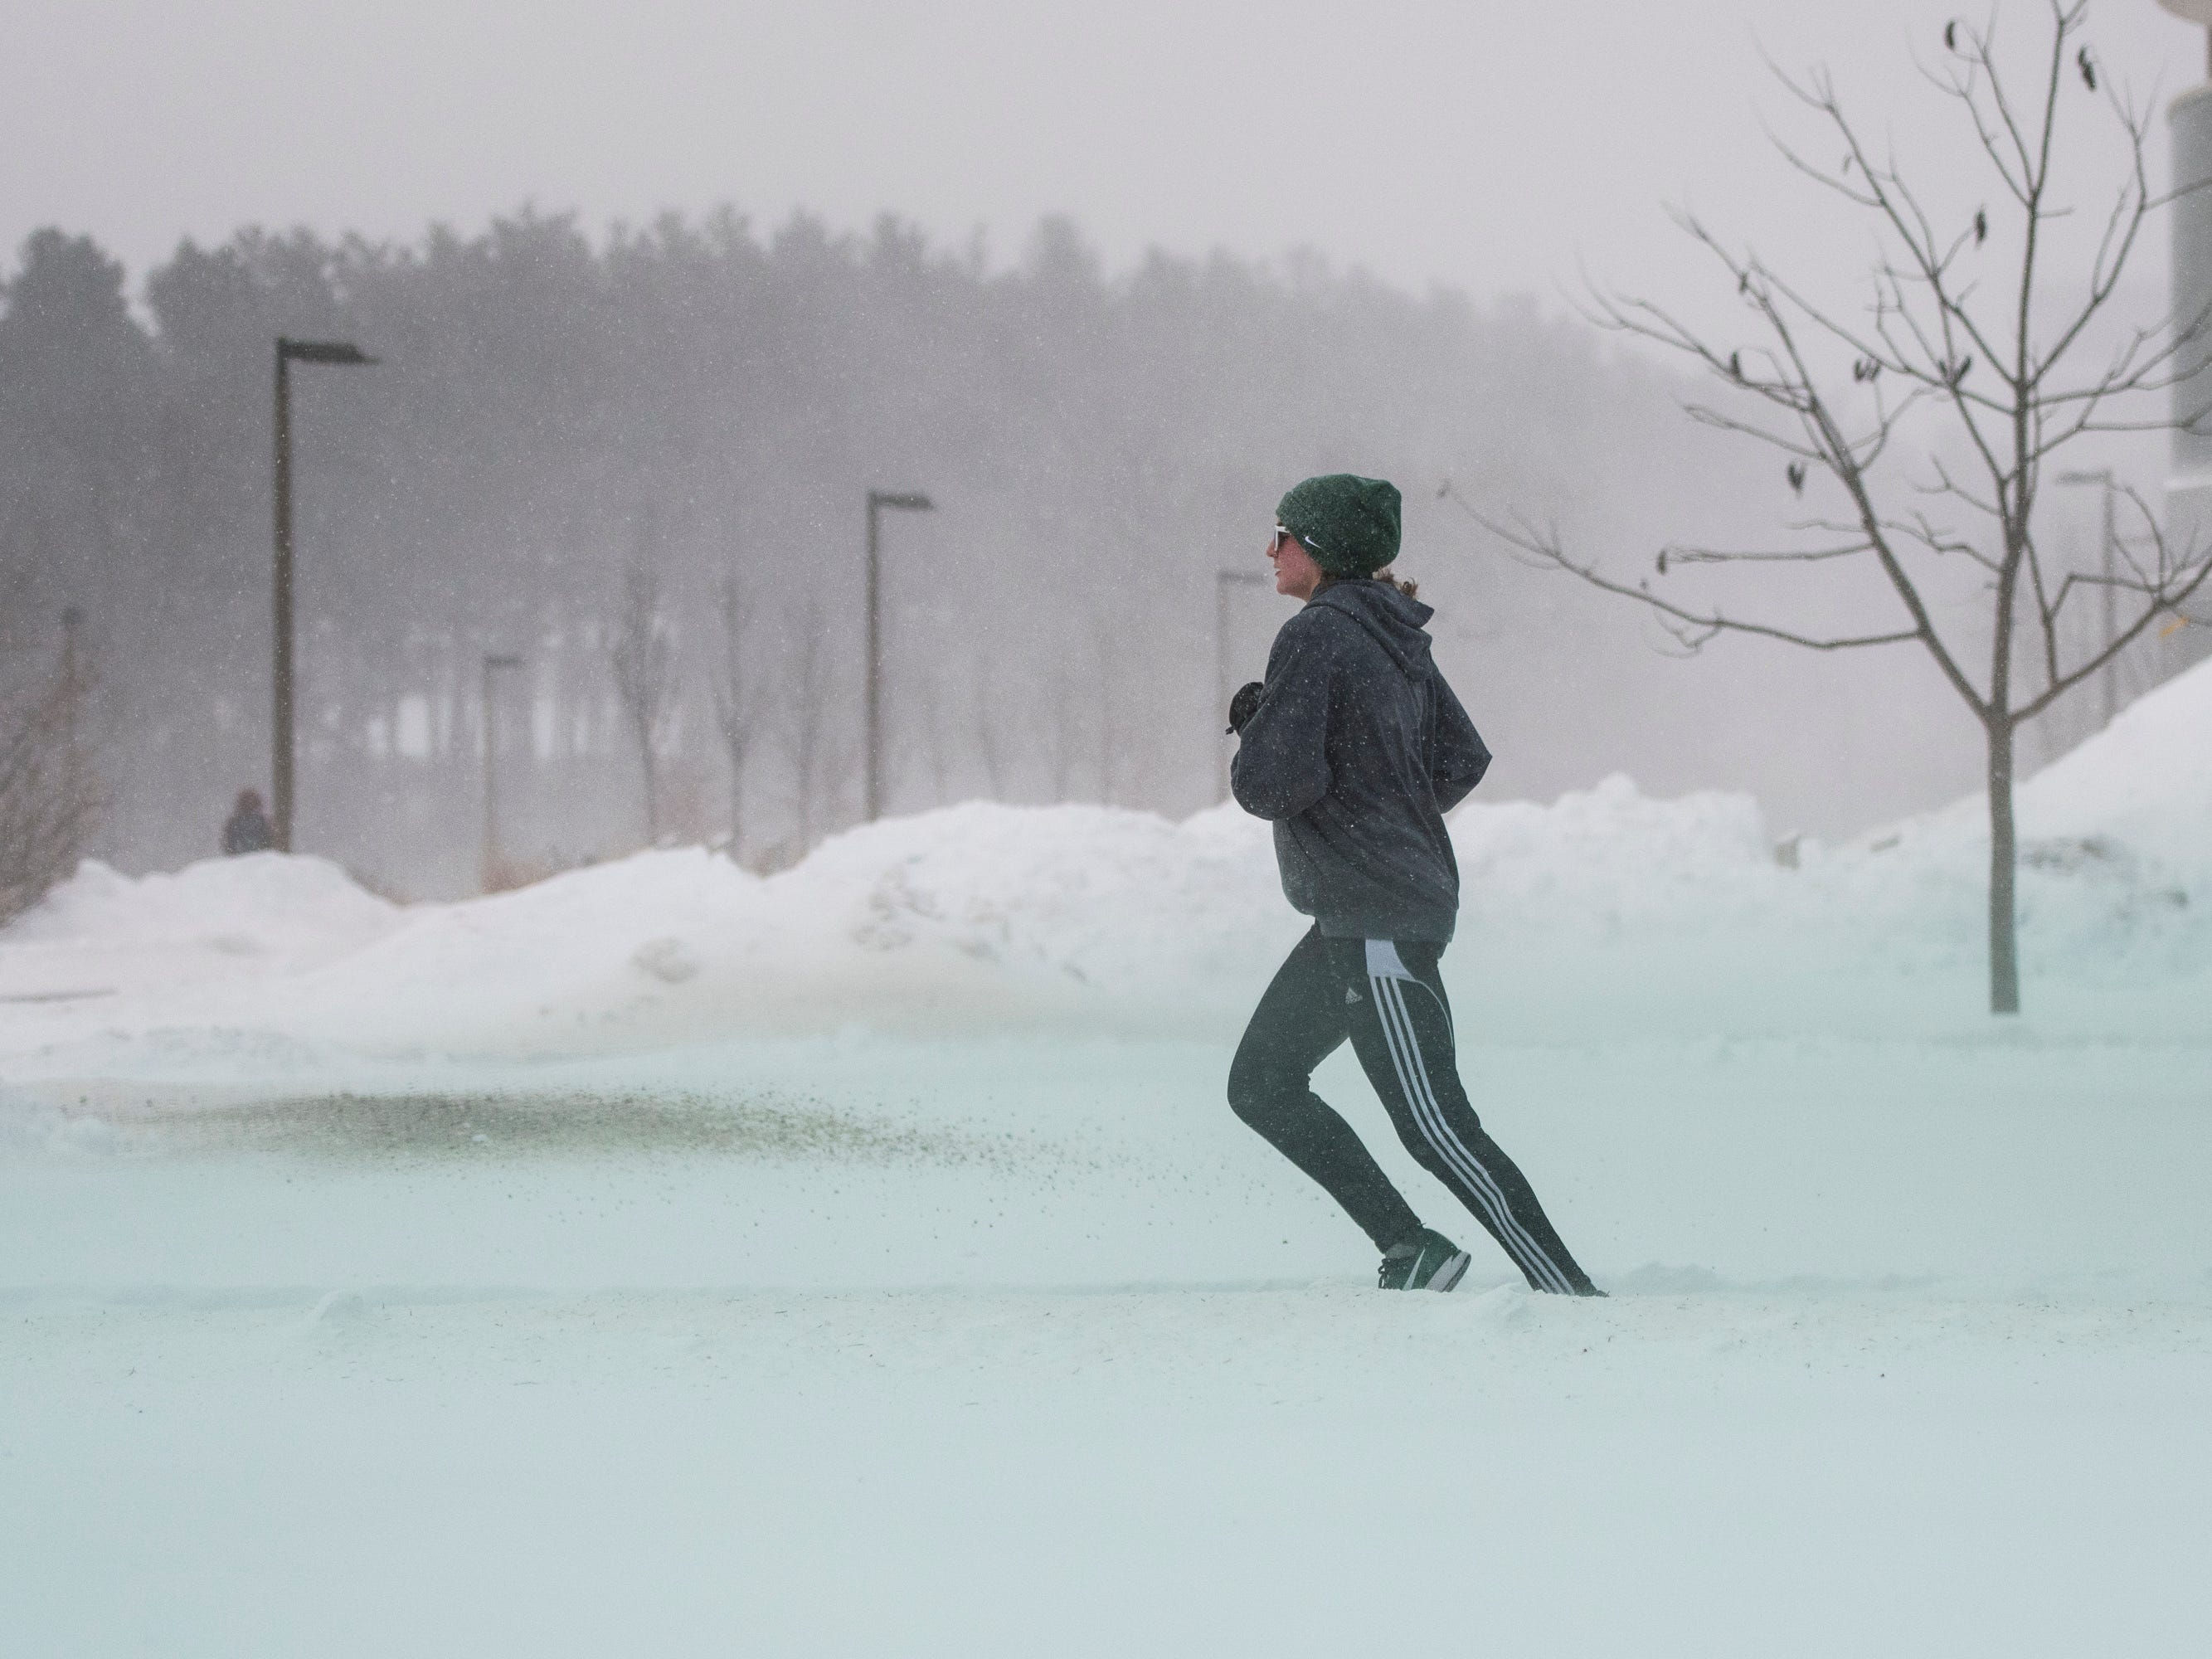 Despite sub-zero windchills, a woman runs across the campus of Michigan State University Tuesday, Jan. 29, 2019, in East Lansing, Michigan.  MSU has called off classes tommorow due to bitter temperatures.  [USA Today Network/Matthew Dae Smith/Lansing State Journal]